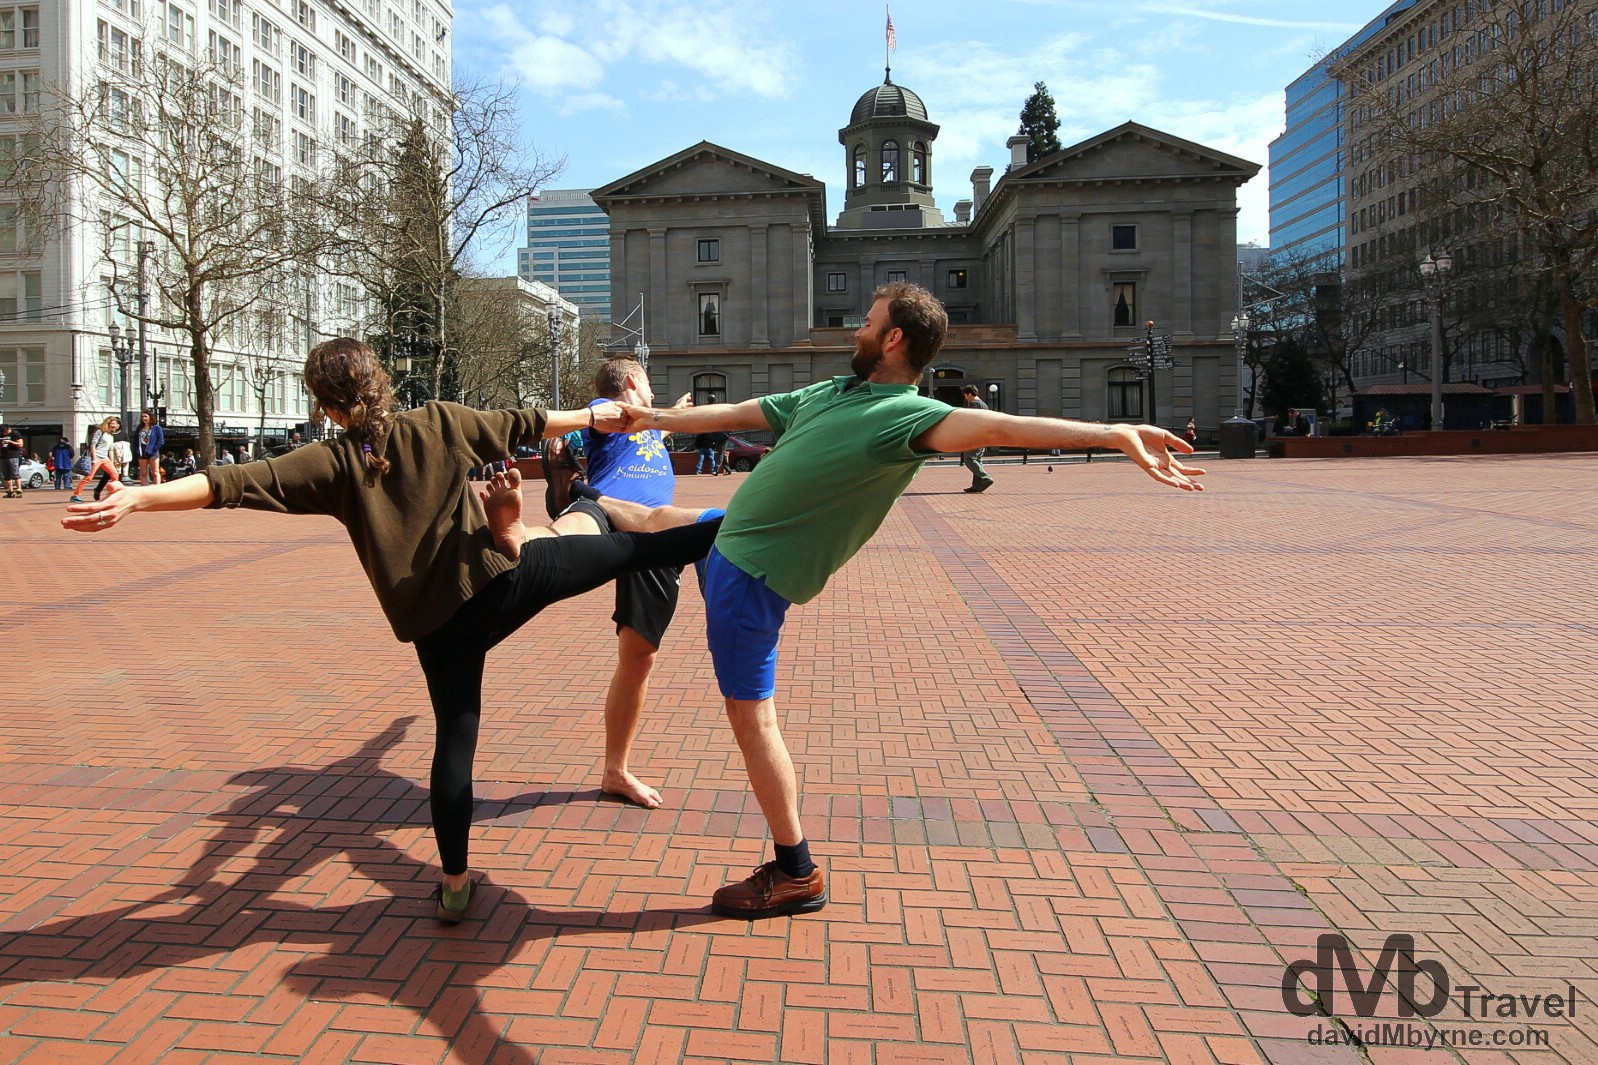 Pioneer Courthouse Square in downtown Portland, Oregon, USA. March 28, 2013.